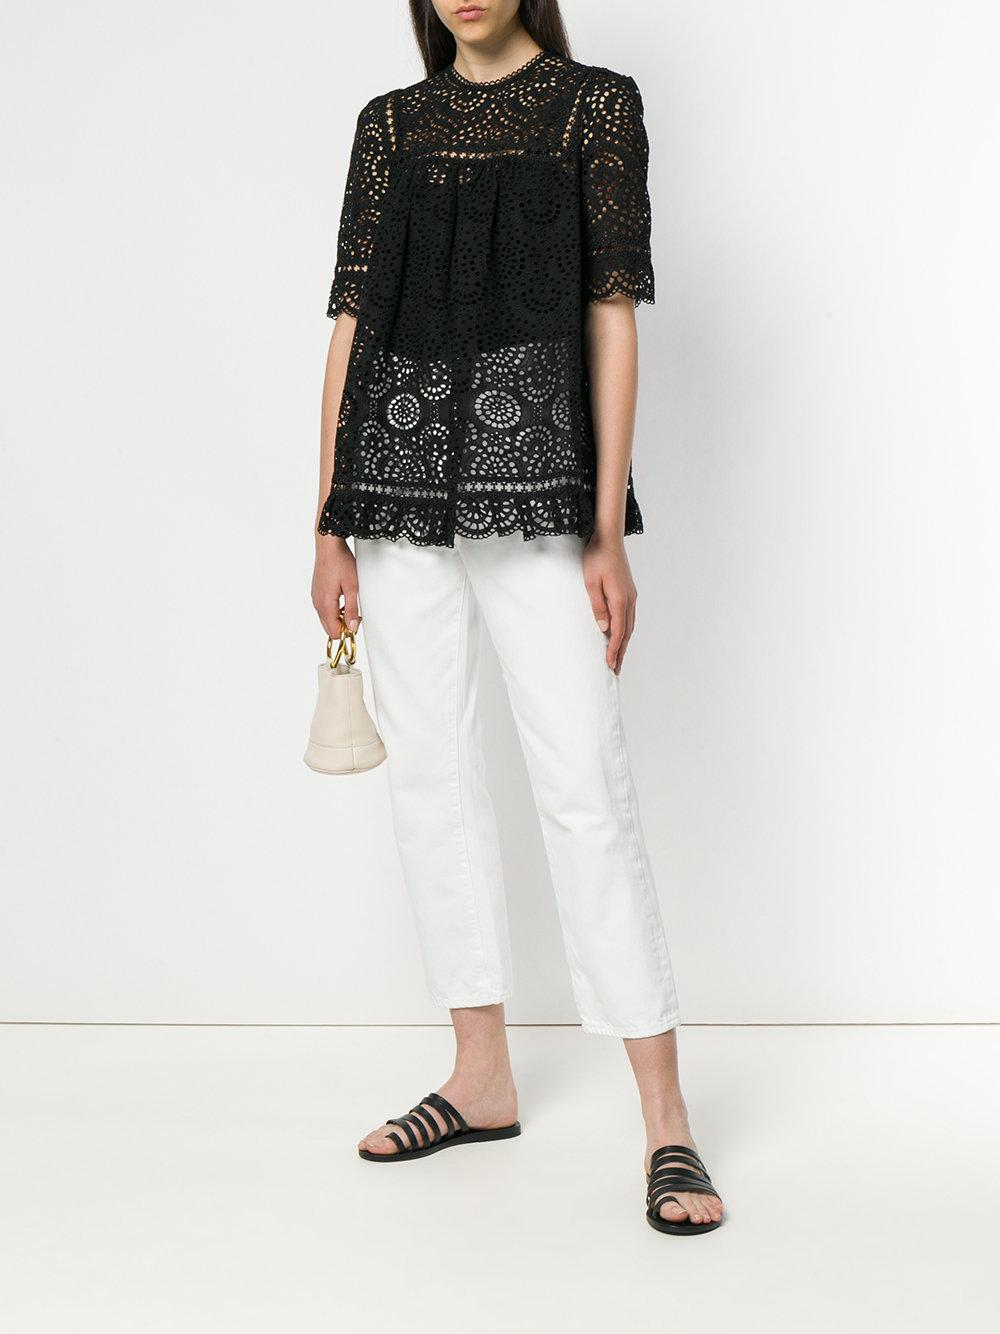 Tali Swirl swing top - Black Zimmermann 100% Guaranteed Cheap Fake Footaction Sale Online Cheap 2018 Low Price For Sale MqdPWMghbZ